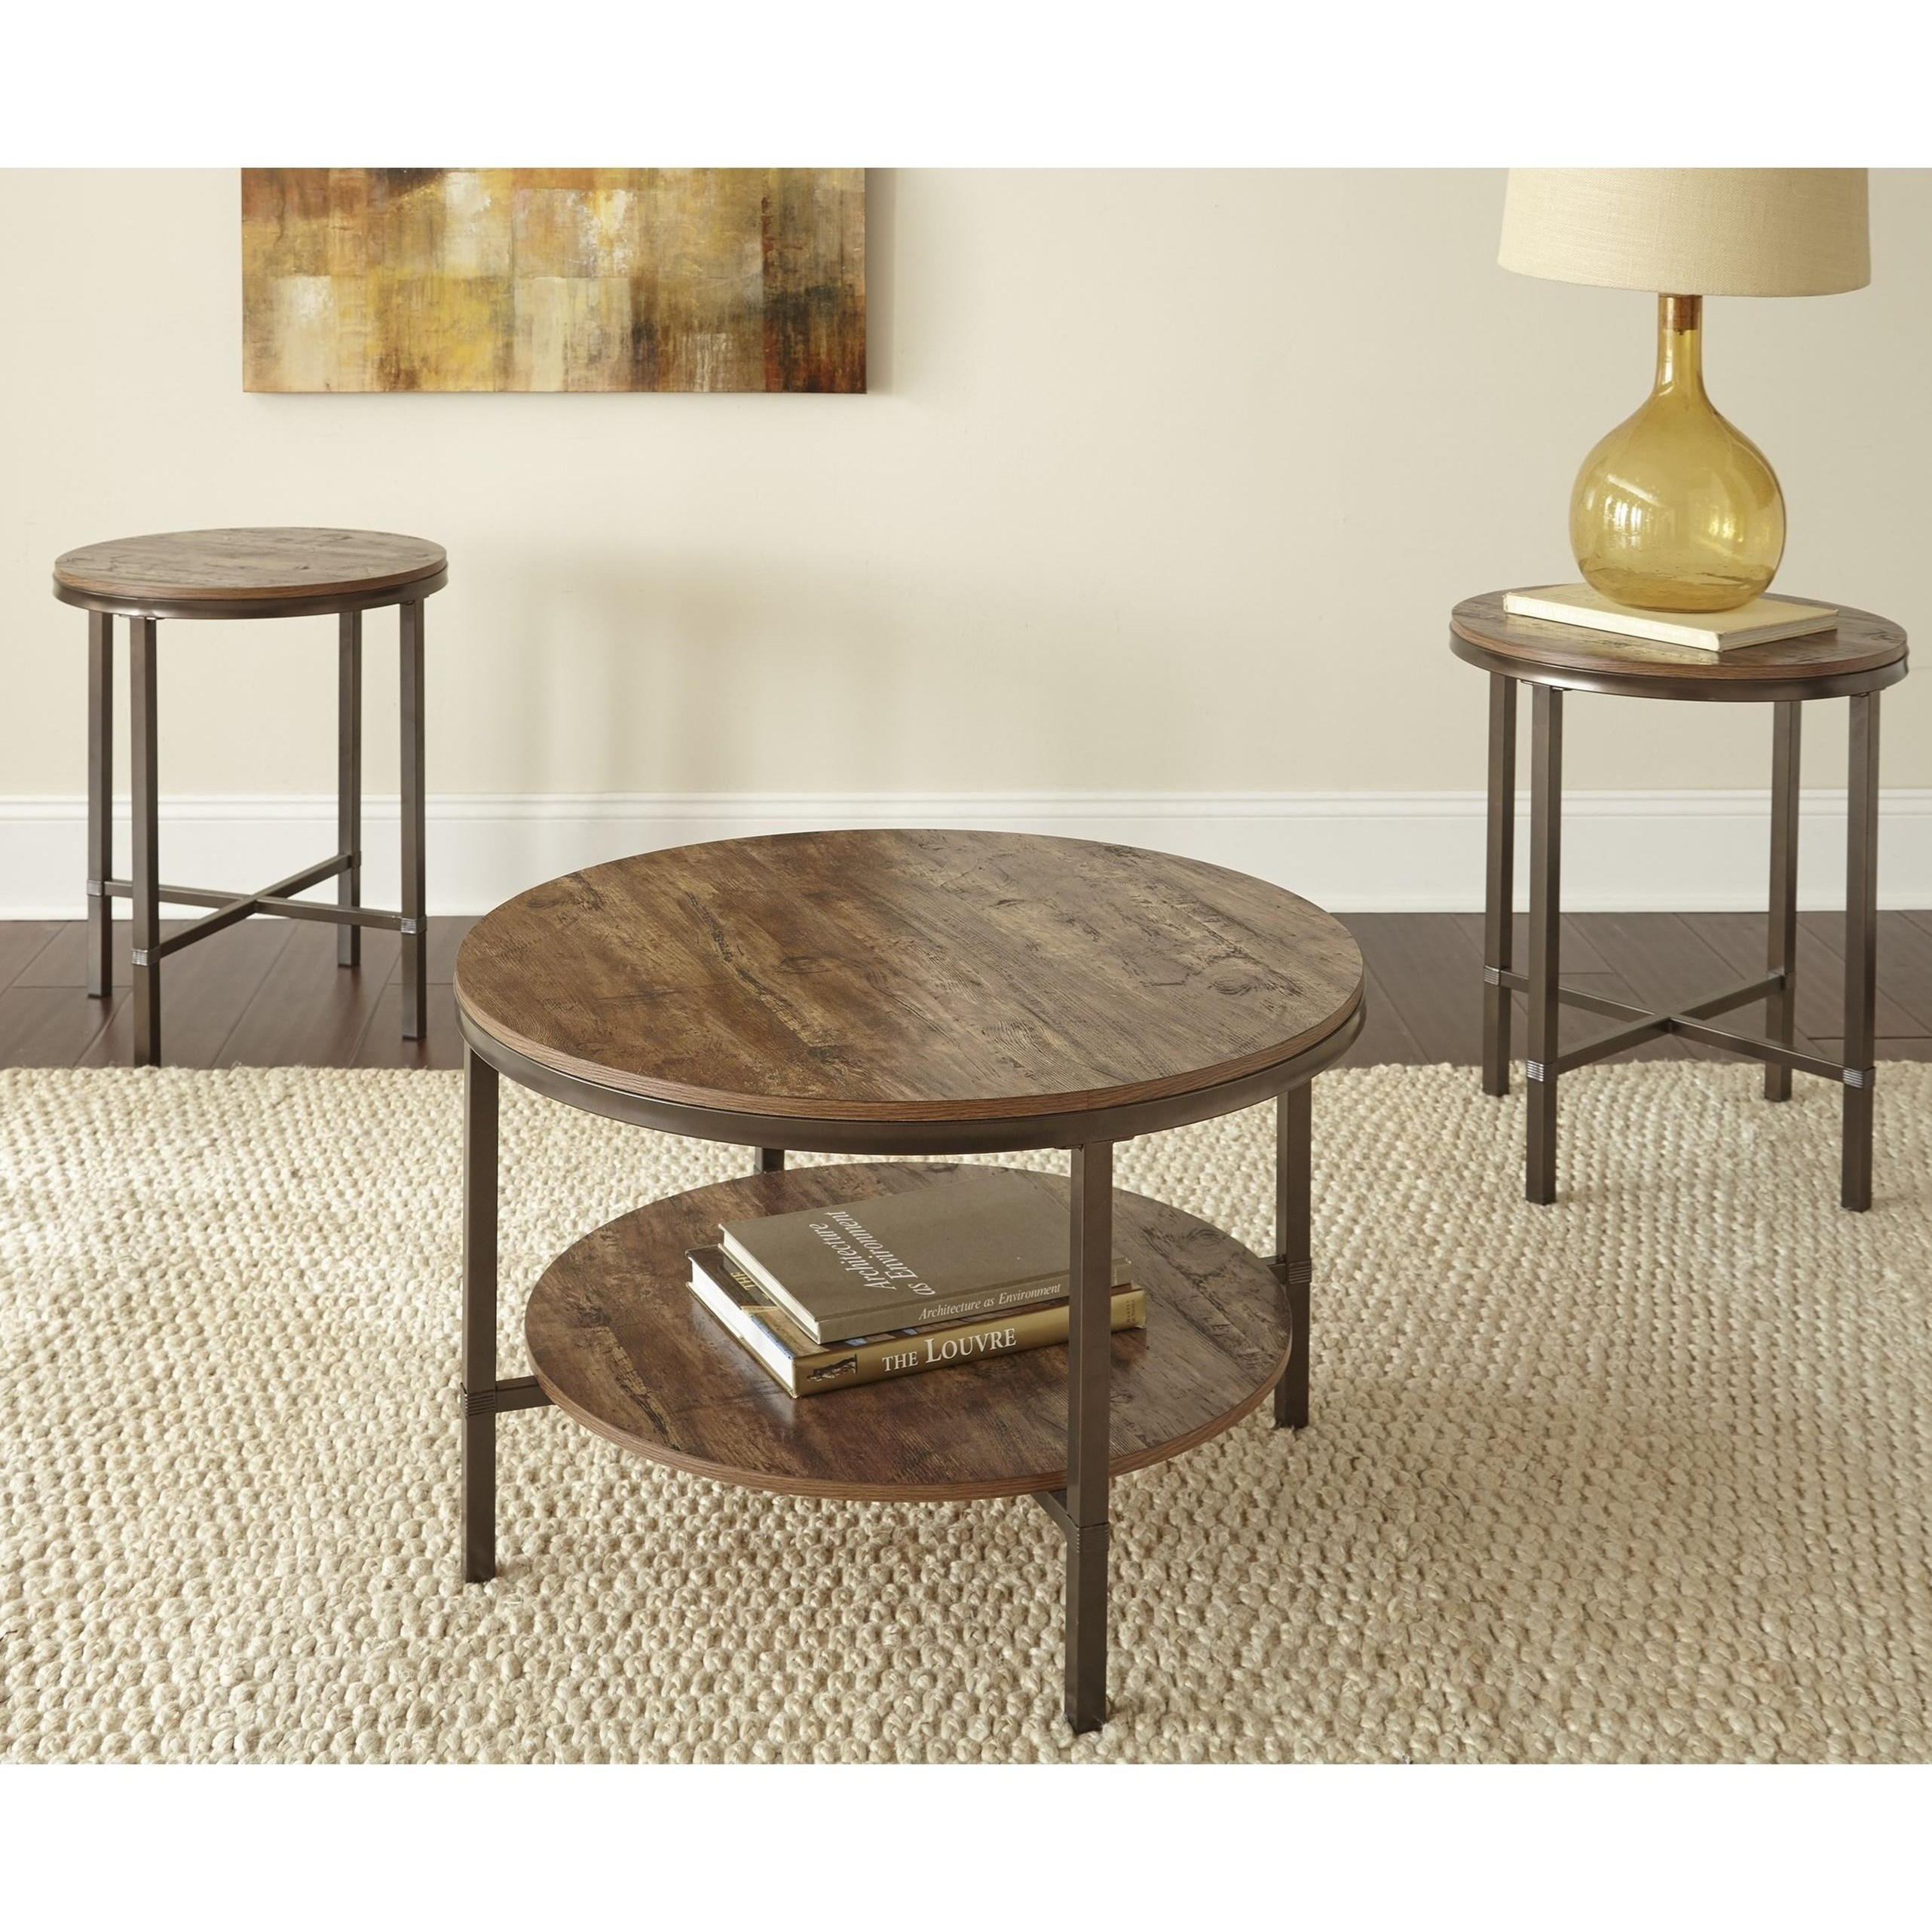 Steve Silver Sedona Se3000a 3 Piece Living Room Table Set Great